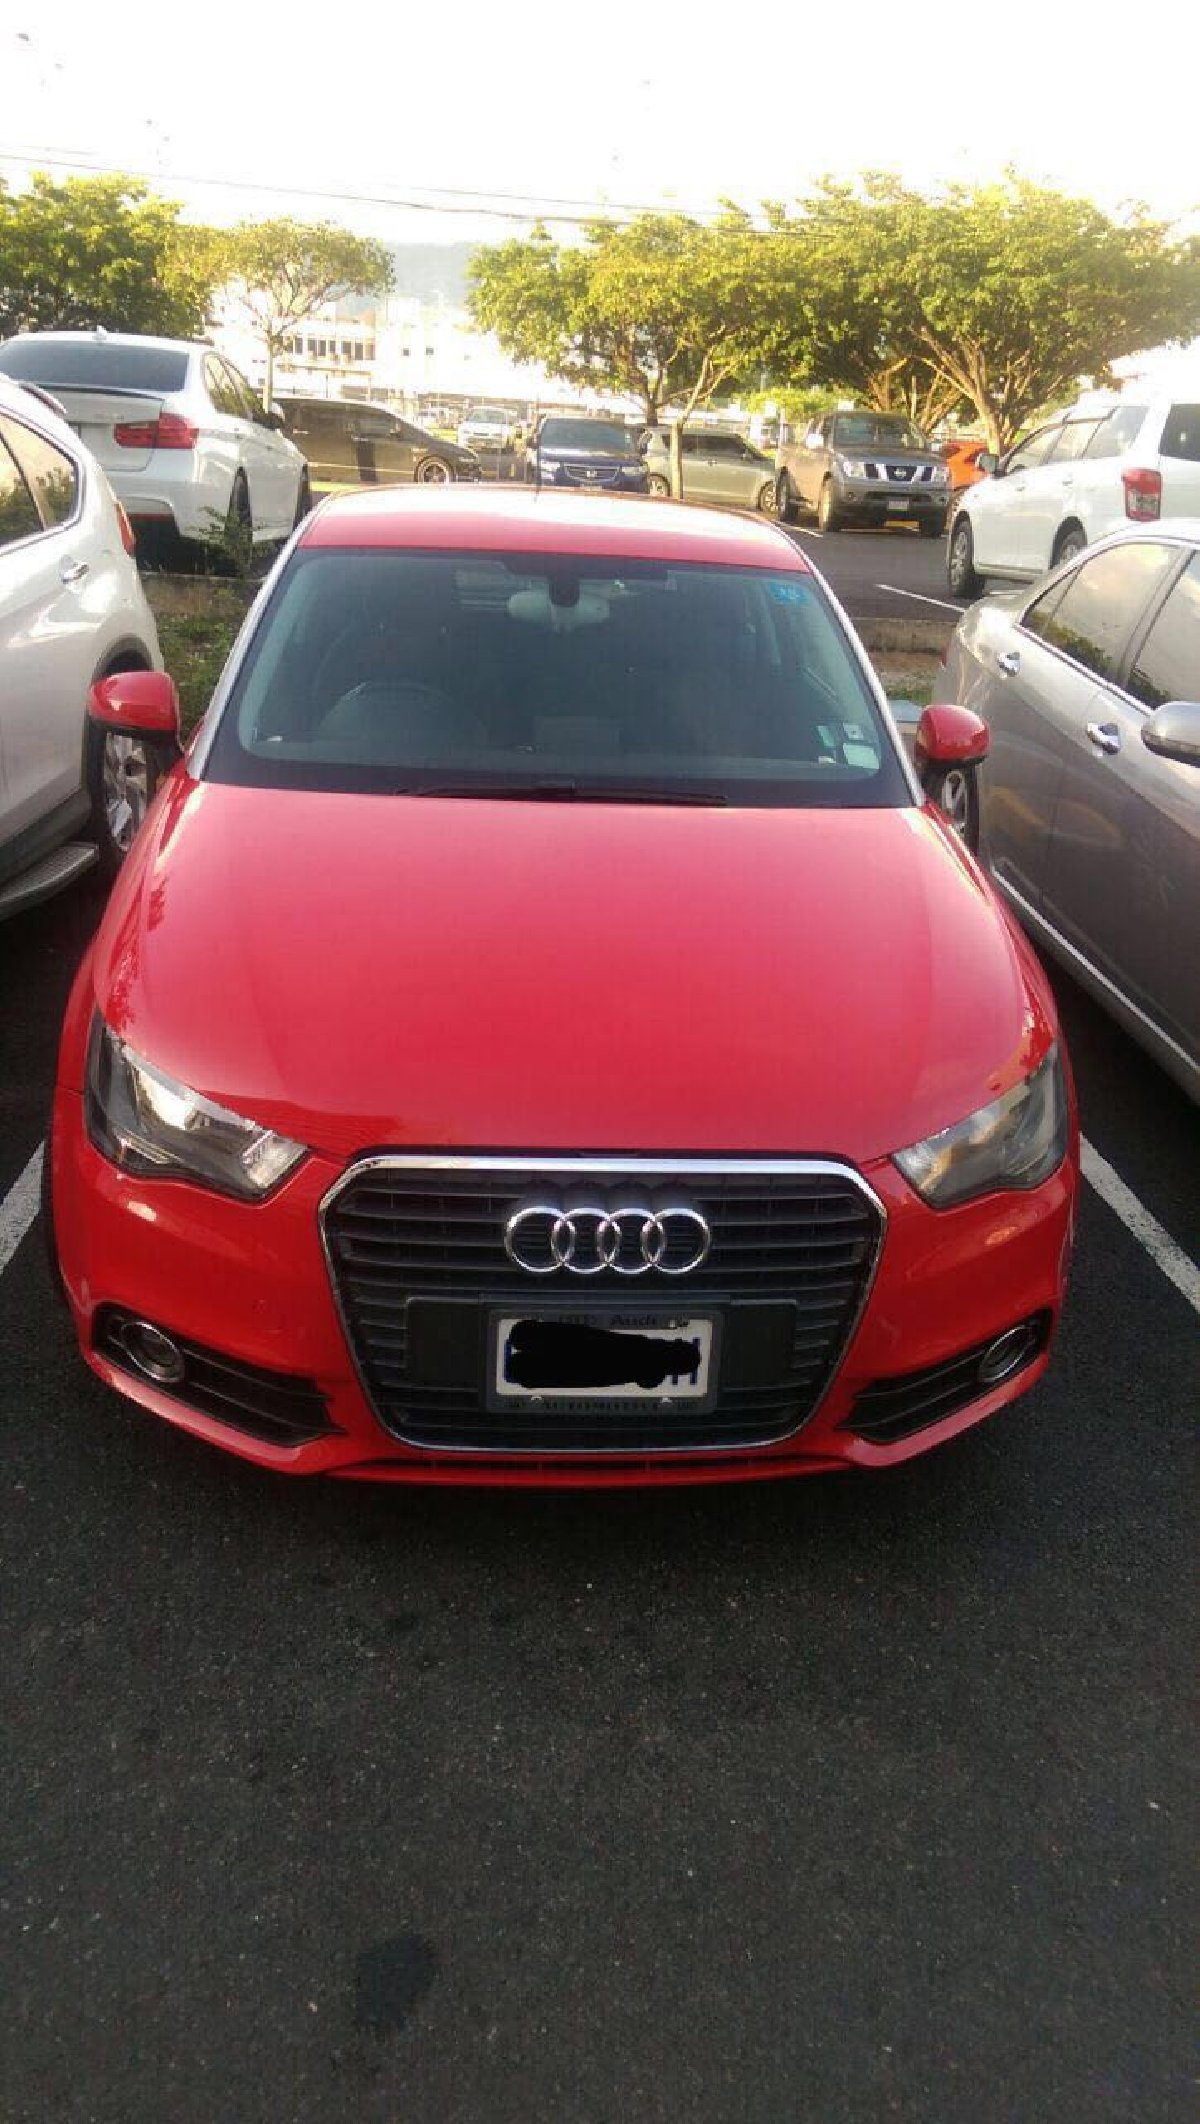 2011 audi a1 for sale in st andrew kingston st andrew cars. Black Bedroom Furniture Sets. Home Design Ideas